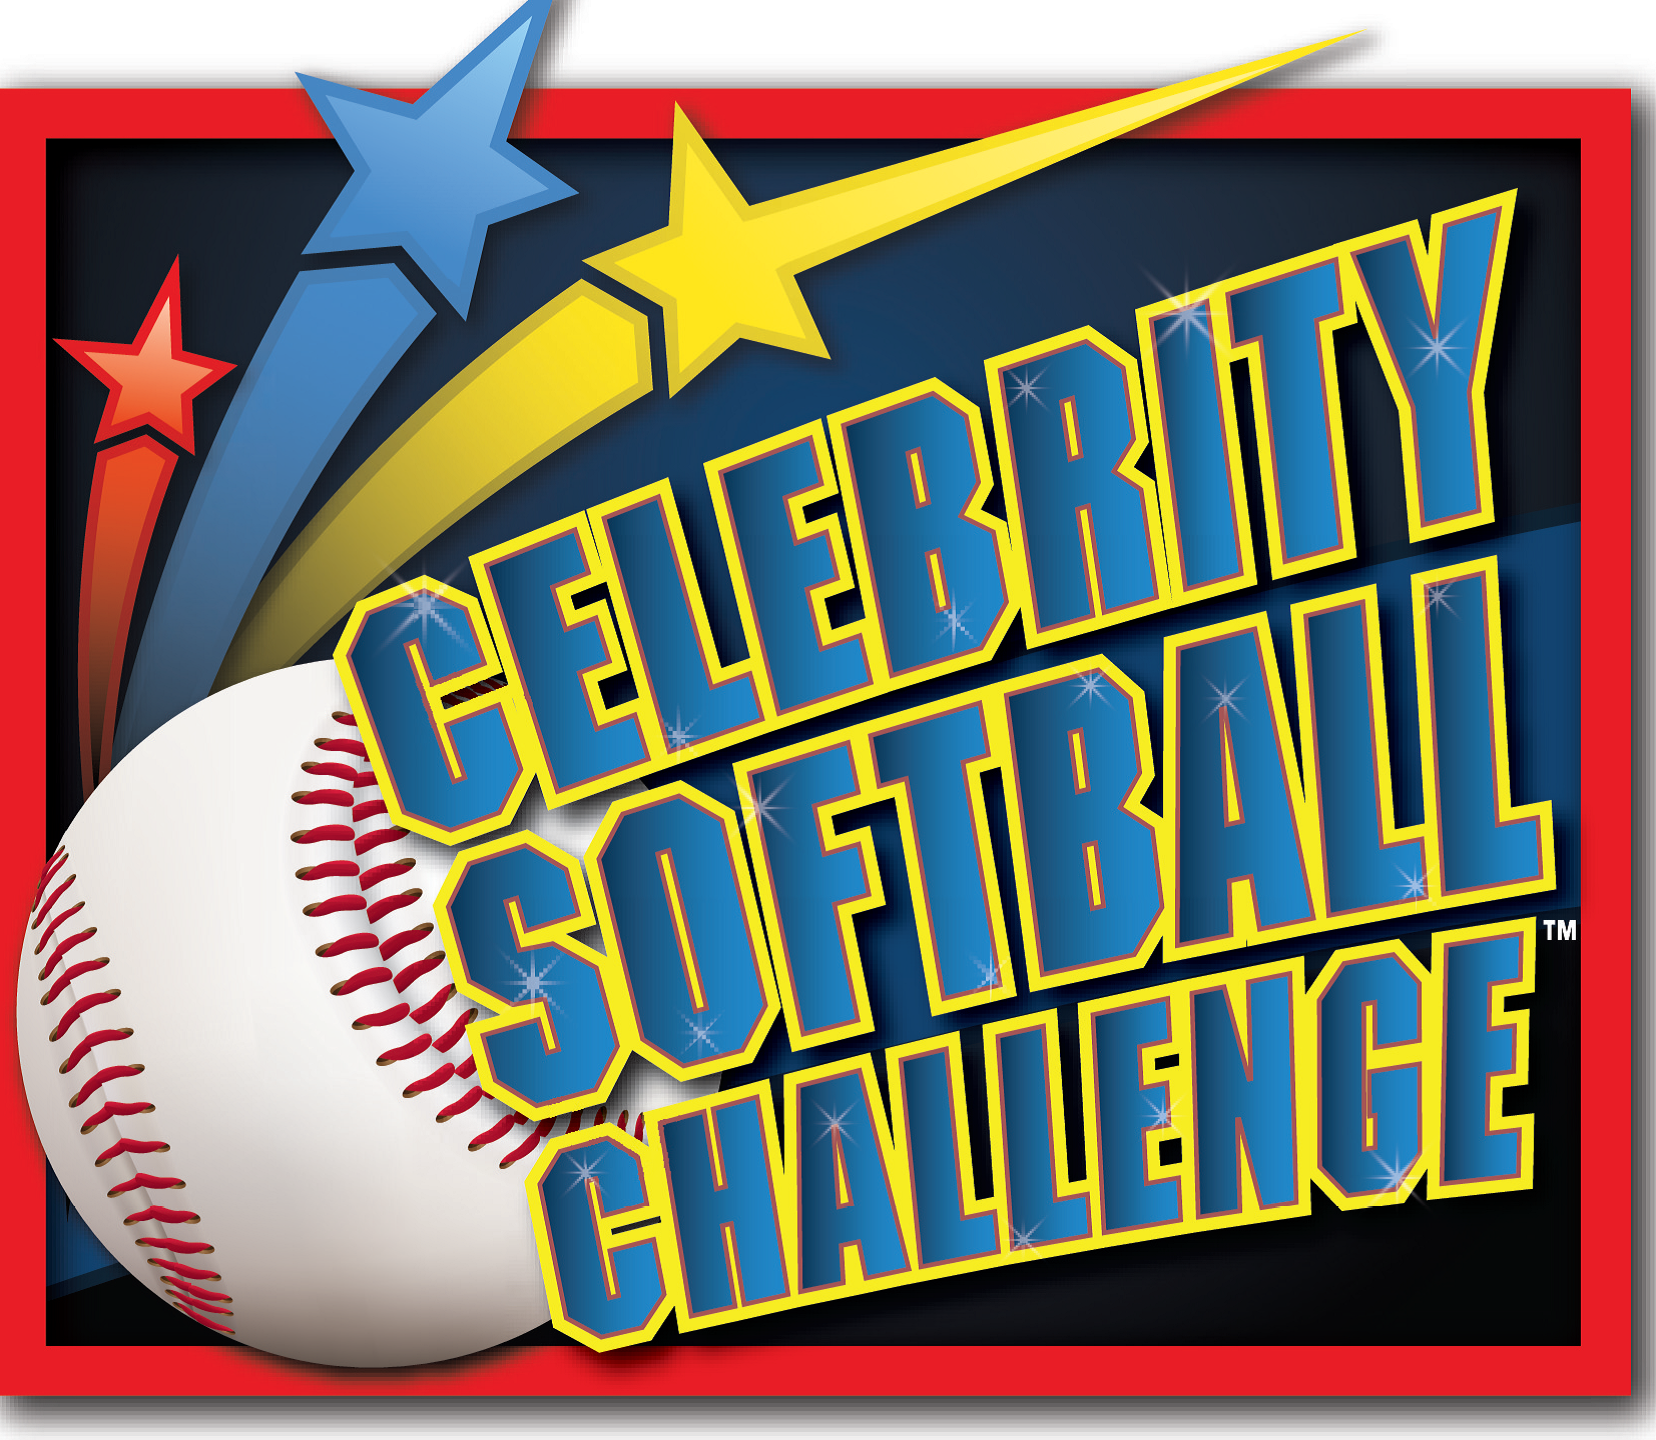 celebrity softball challenge logo